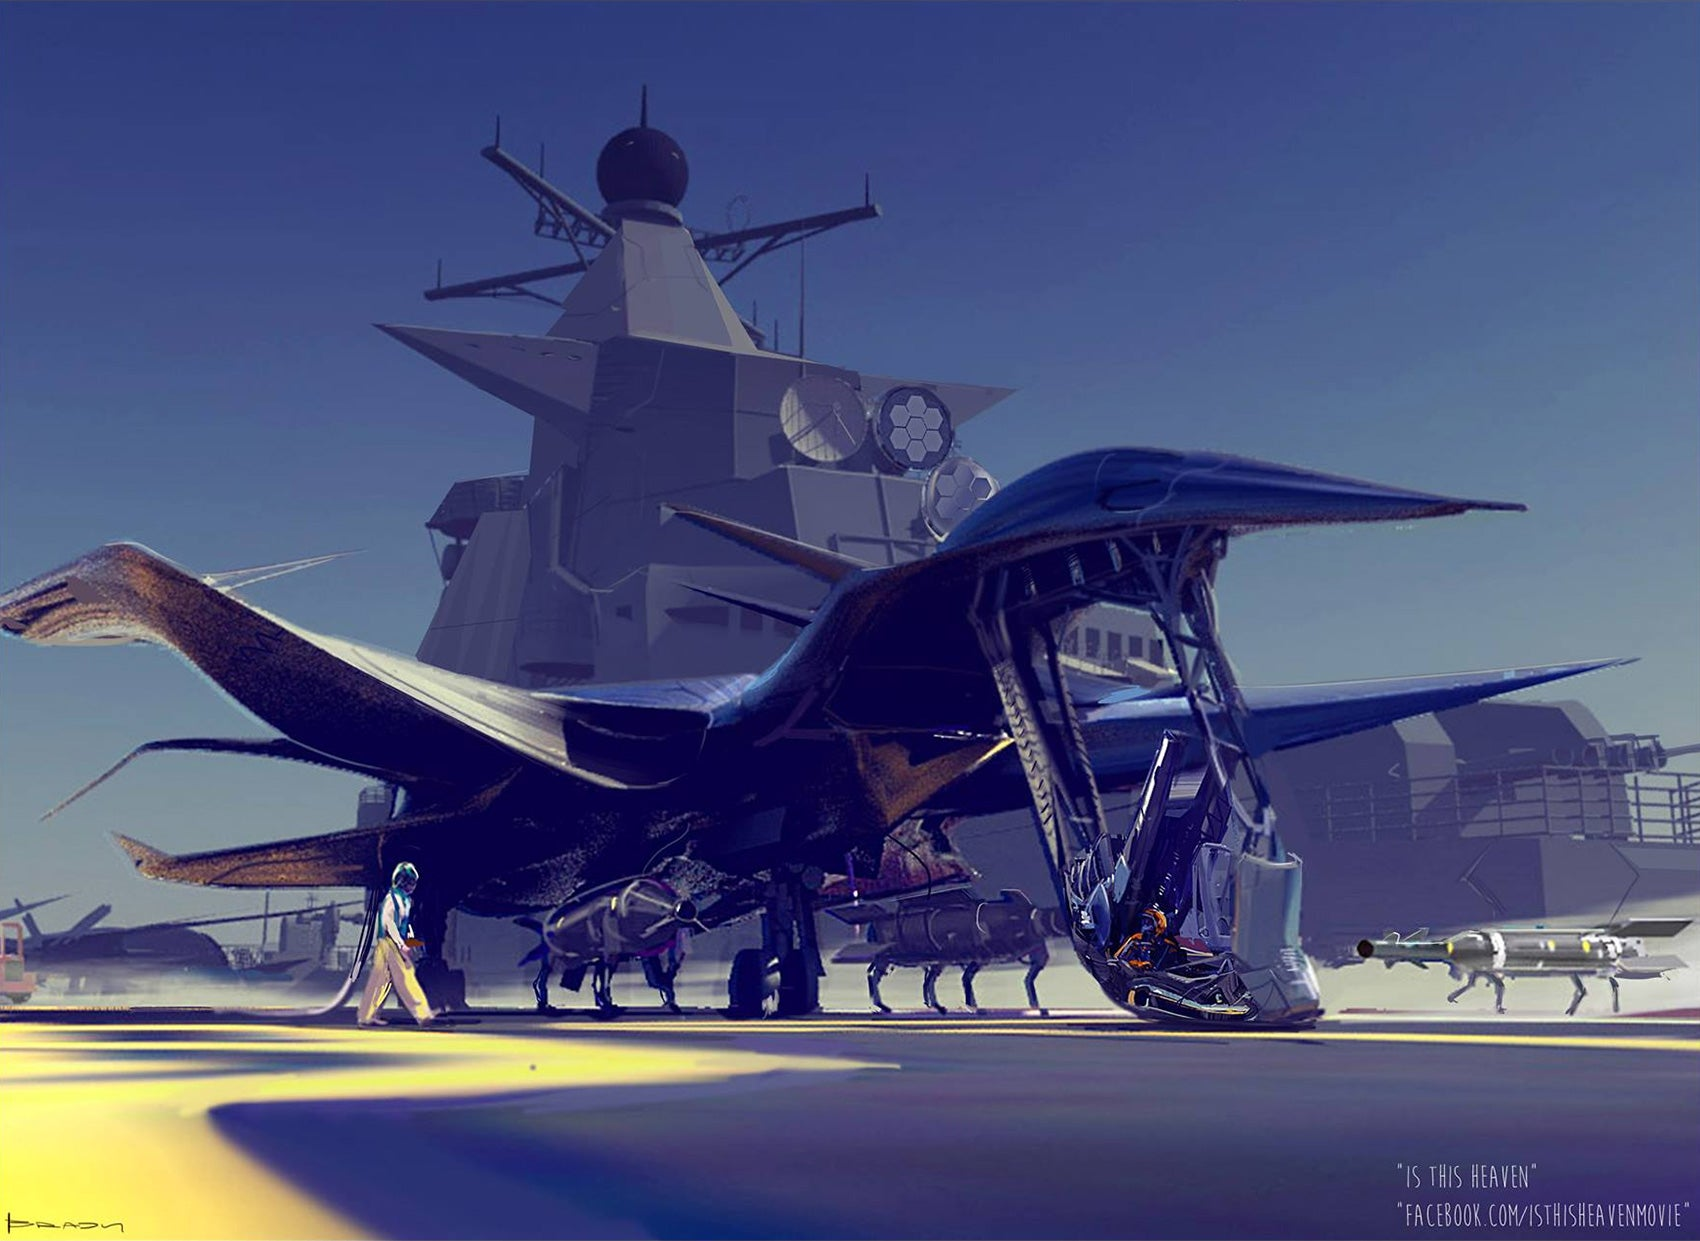 These pterodactyls combat jets are so damn cool